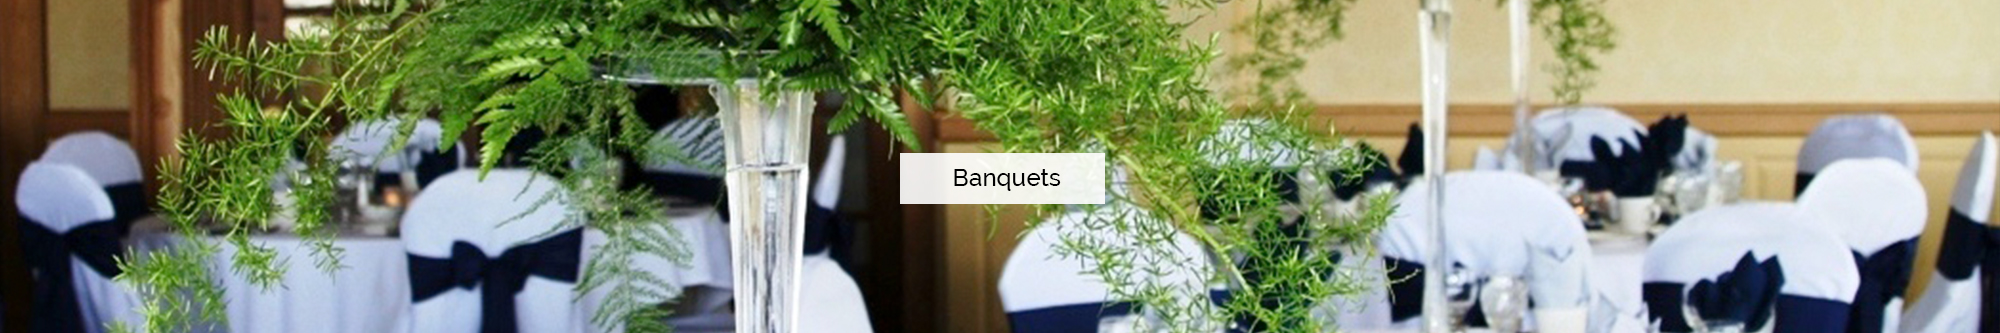 Buffalo Launch Club - Banquets, Weddings, Meetings